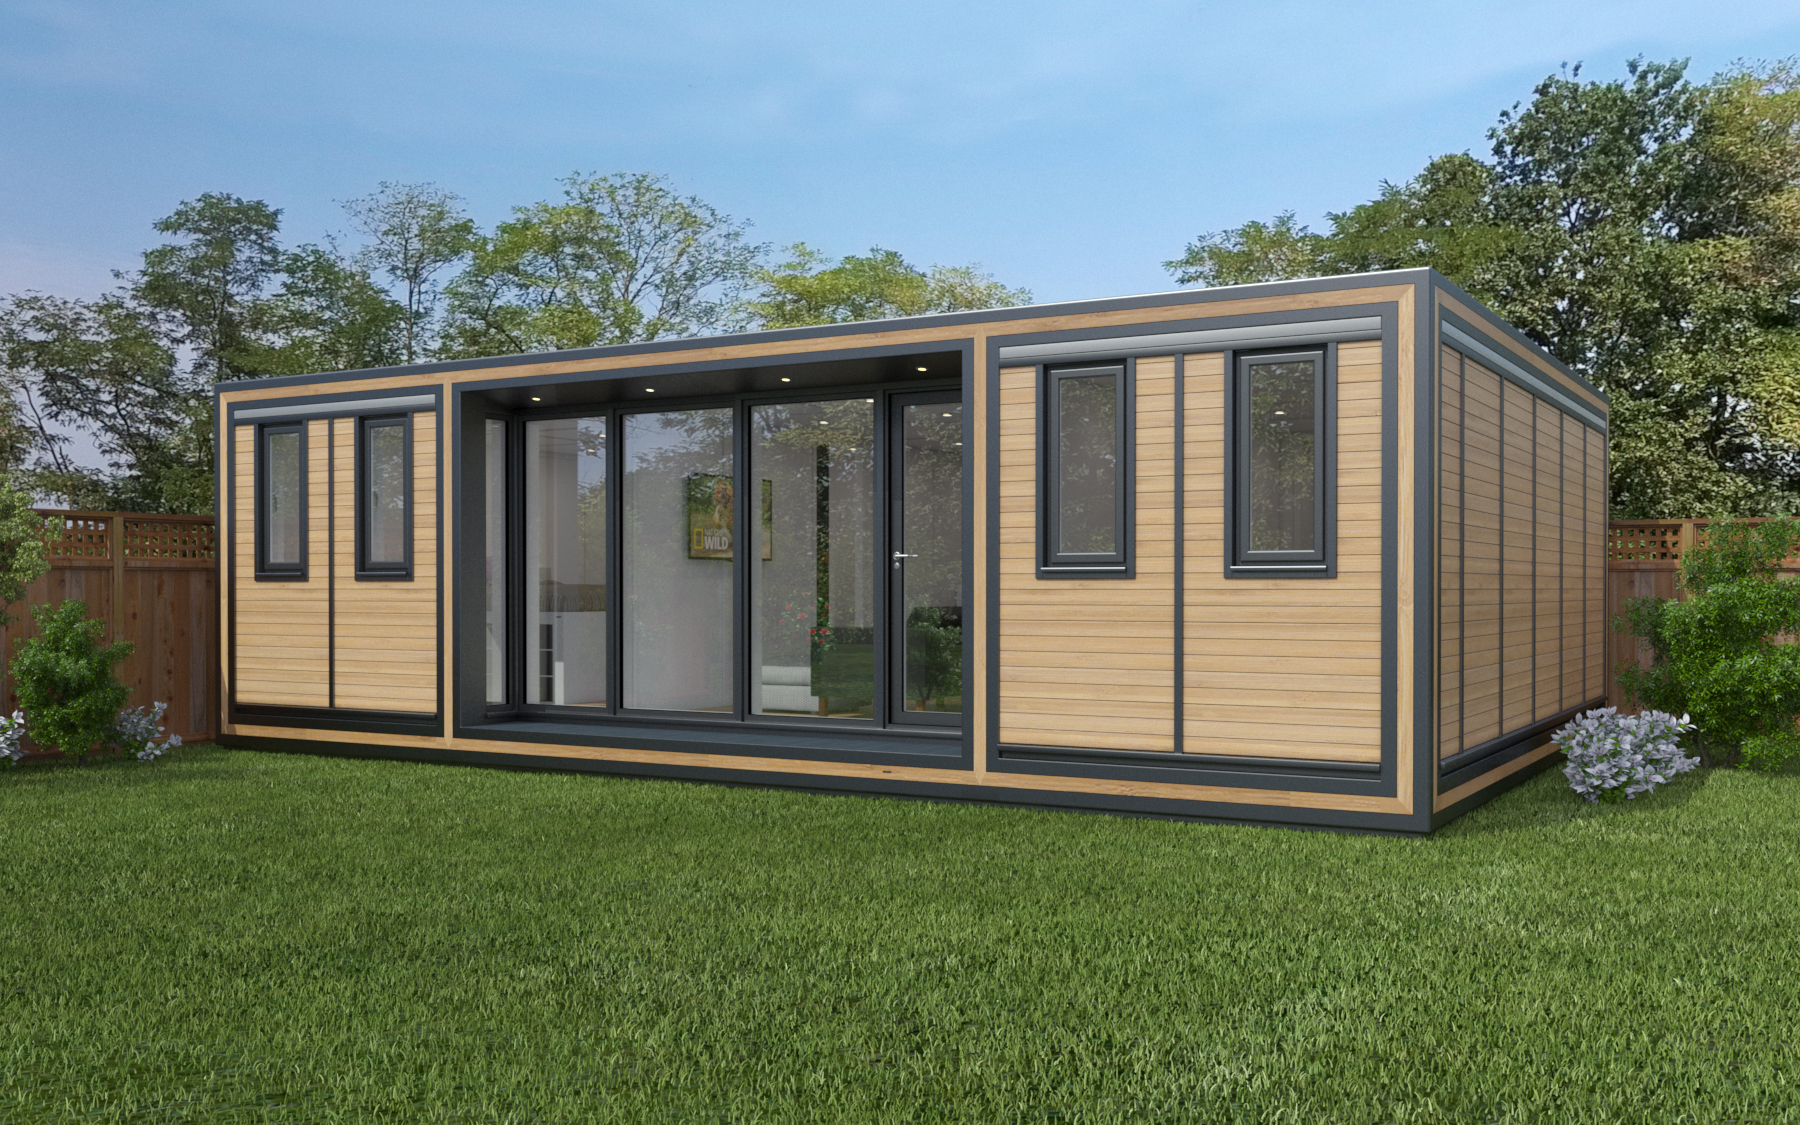 ZEDBOX 855  (8 x 5.5)  Internal Size: 8543 x 5888  External Size: 9013 x 6358  Bed Options: Single, Double or two doubles.  Kitchen Options: Micro Kitchen or Kitchen  Wet Room Options: Yes  Portico: Yes  Price:  £64,000    Optional Extras    Request Zedbox Catalogue